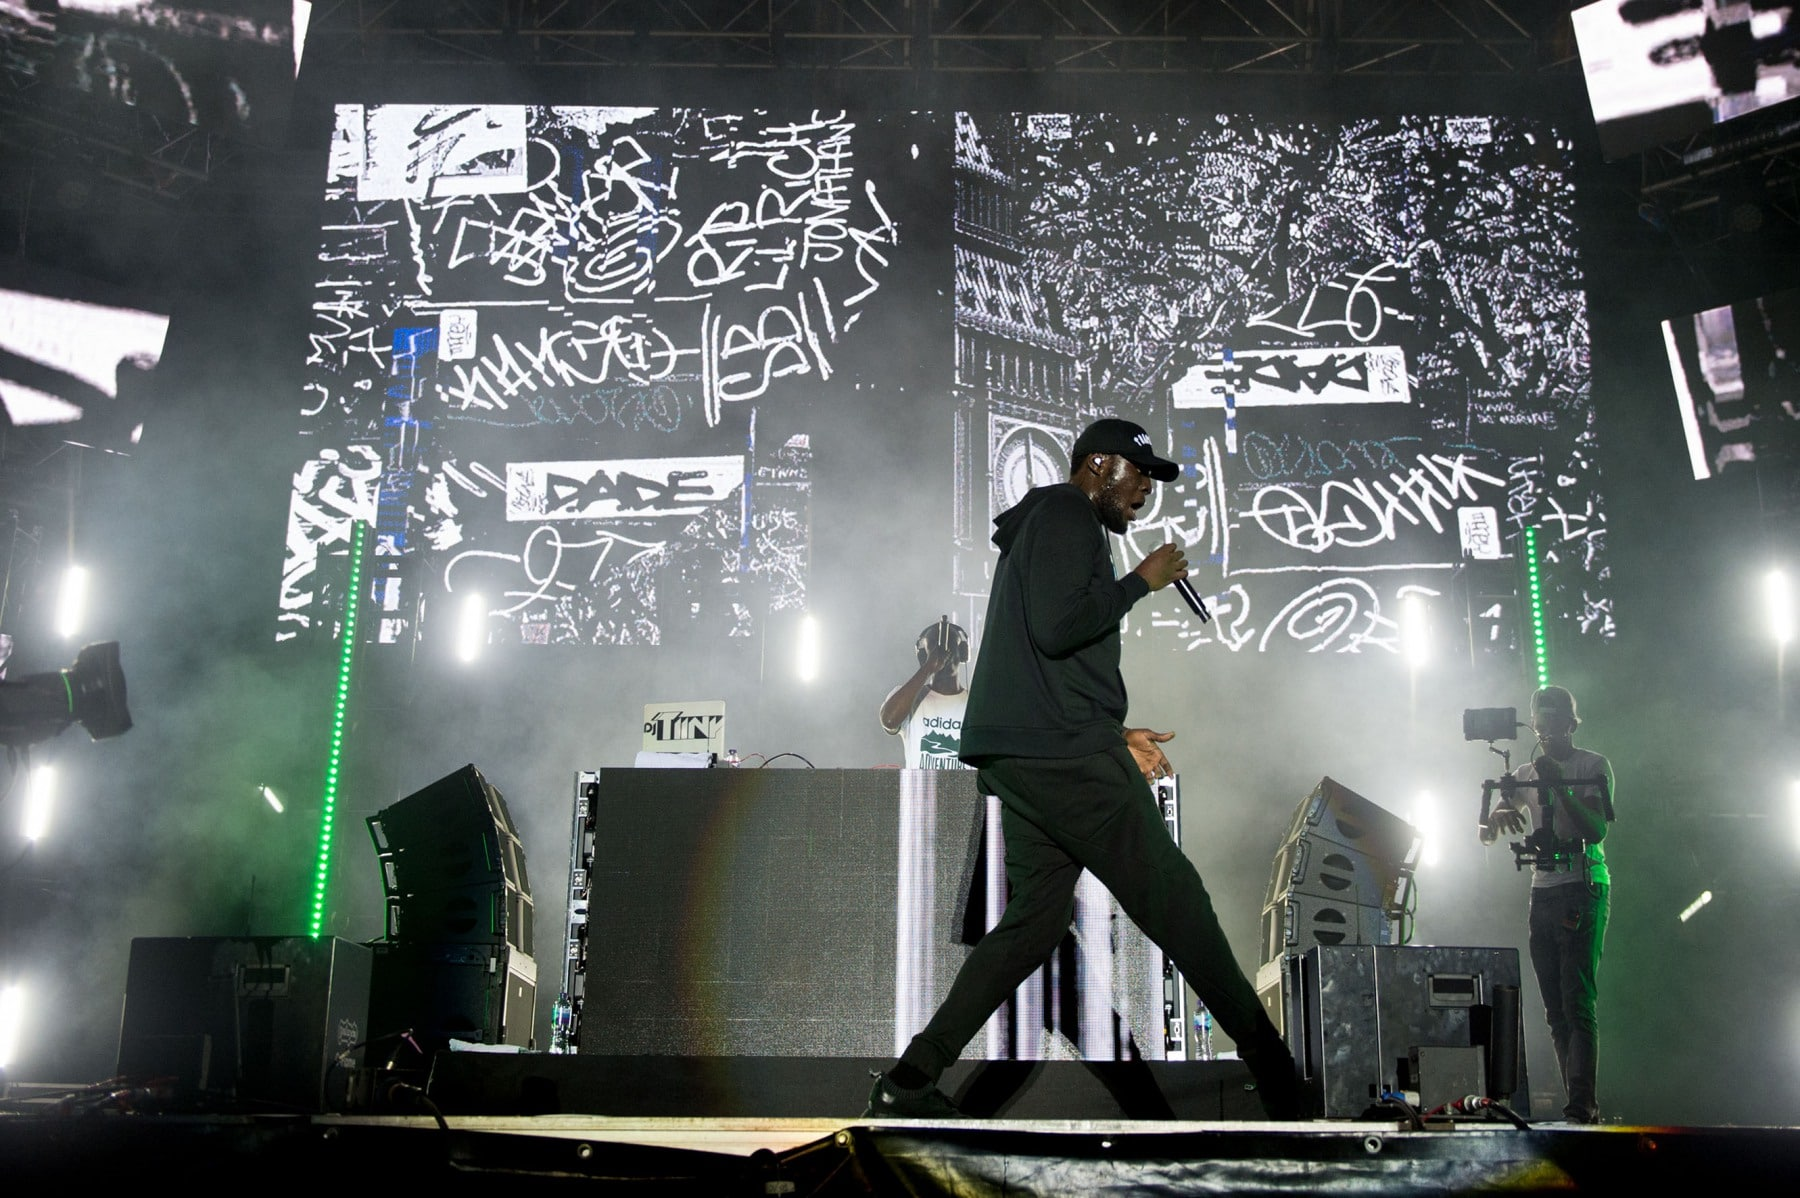 stormzy-at-mtv-presents-gibraltar-calling-2018-day-2-by-ollie-millington-27_44884691341_o